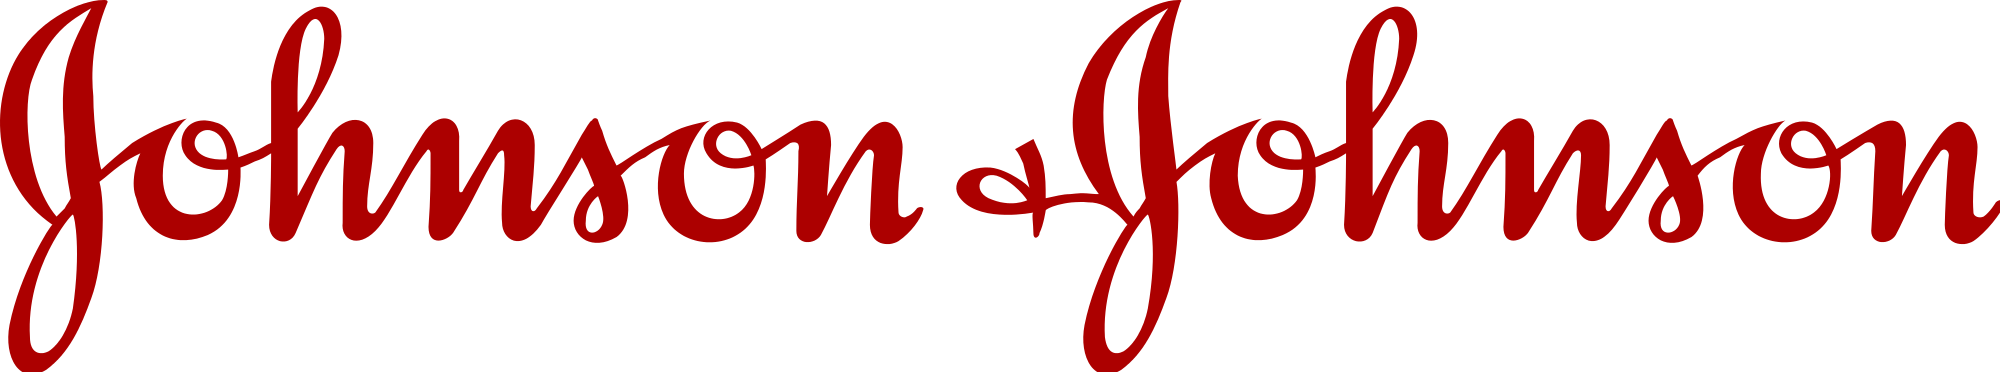 johnson&johnsonlogo